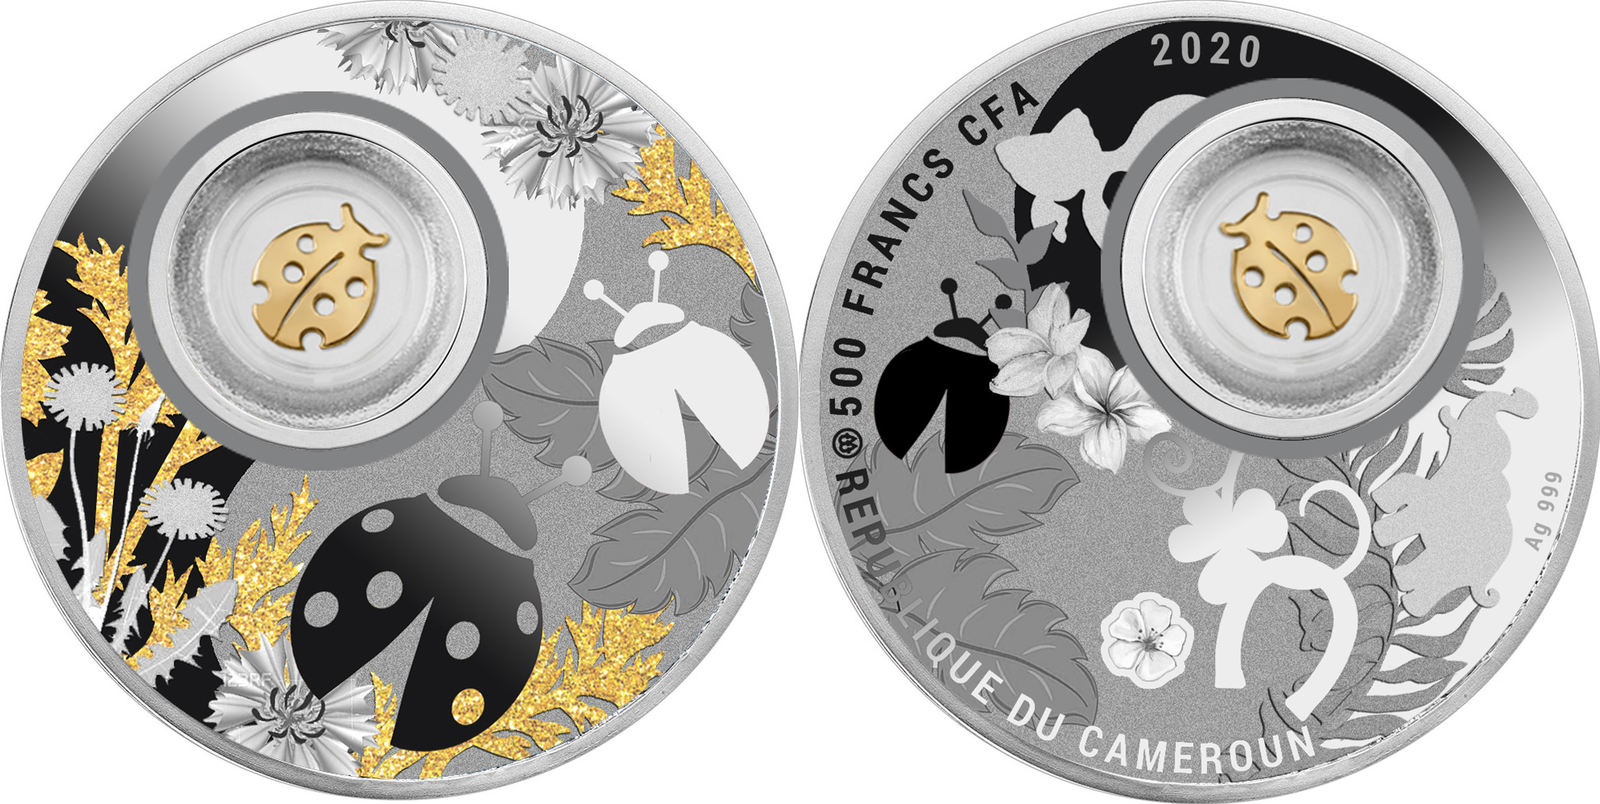 Ladybug Lucky Silver Coin 500 Francs Cameroon 2020 Proof Ma Shops